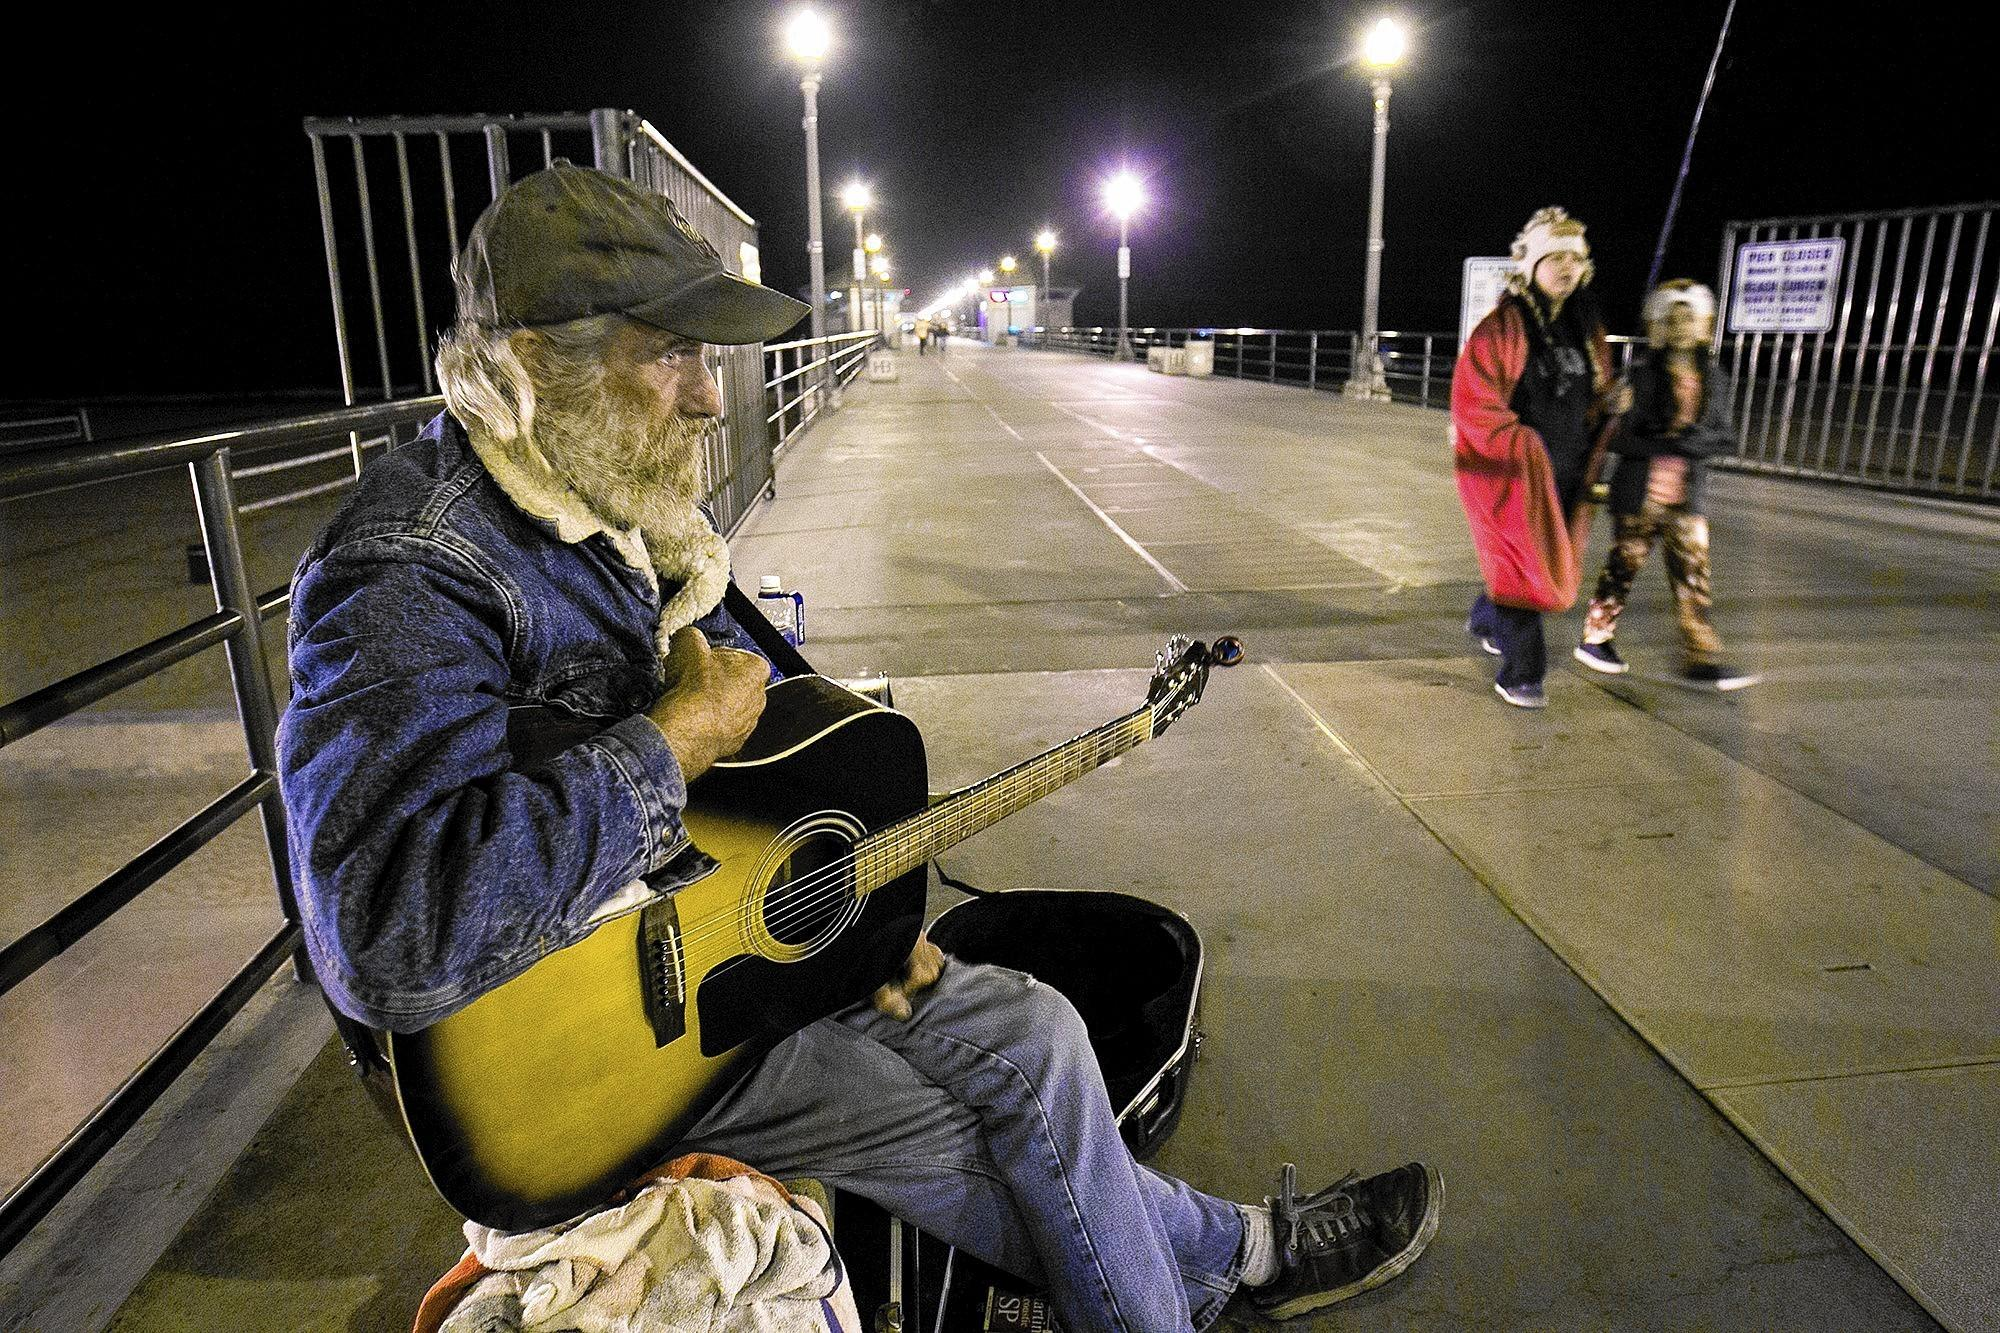 Mike Carltock plays guitar on the Huntington Beach Pier on Tuesday night. Carltock, who is homeless, lives out of his truck and survives on Social Security and the tips he makes playing guitar.